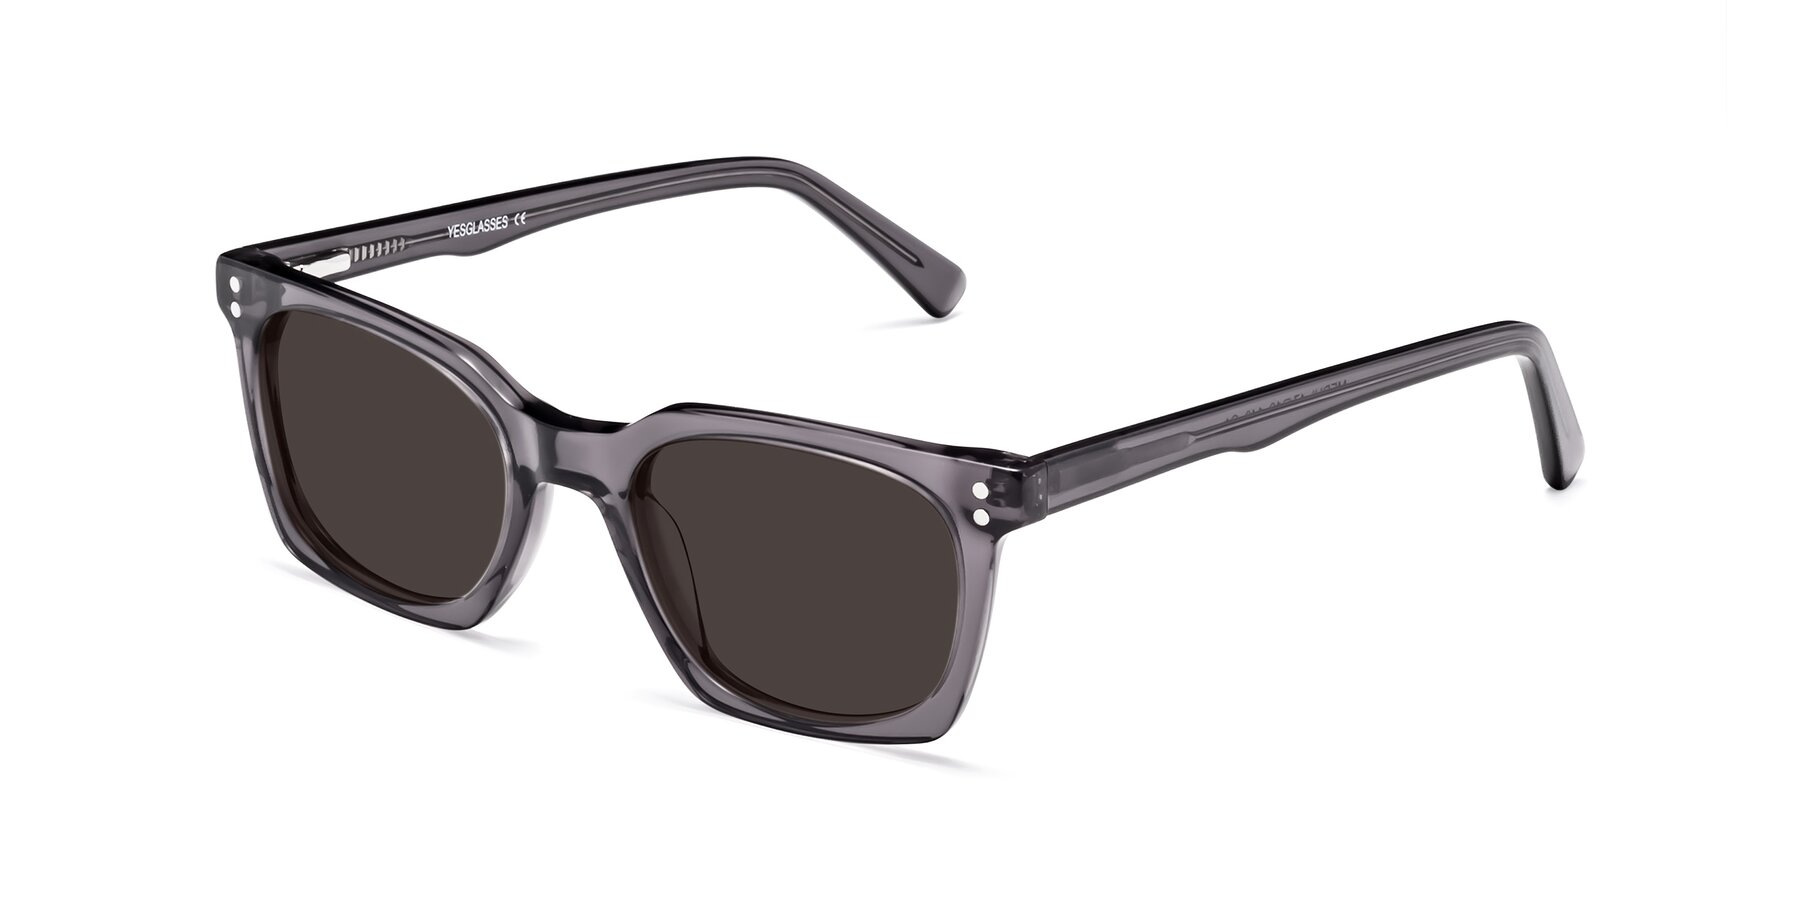 Angle of 17355 in Transparent Gray with Gray Tinted Lenses